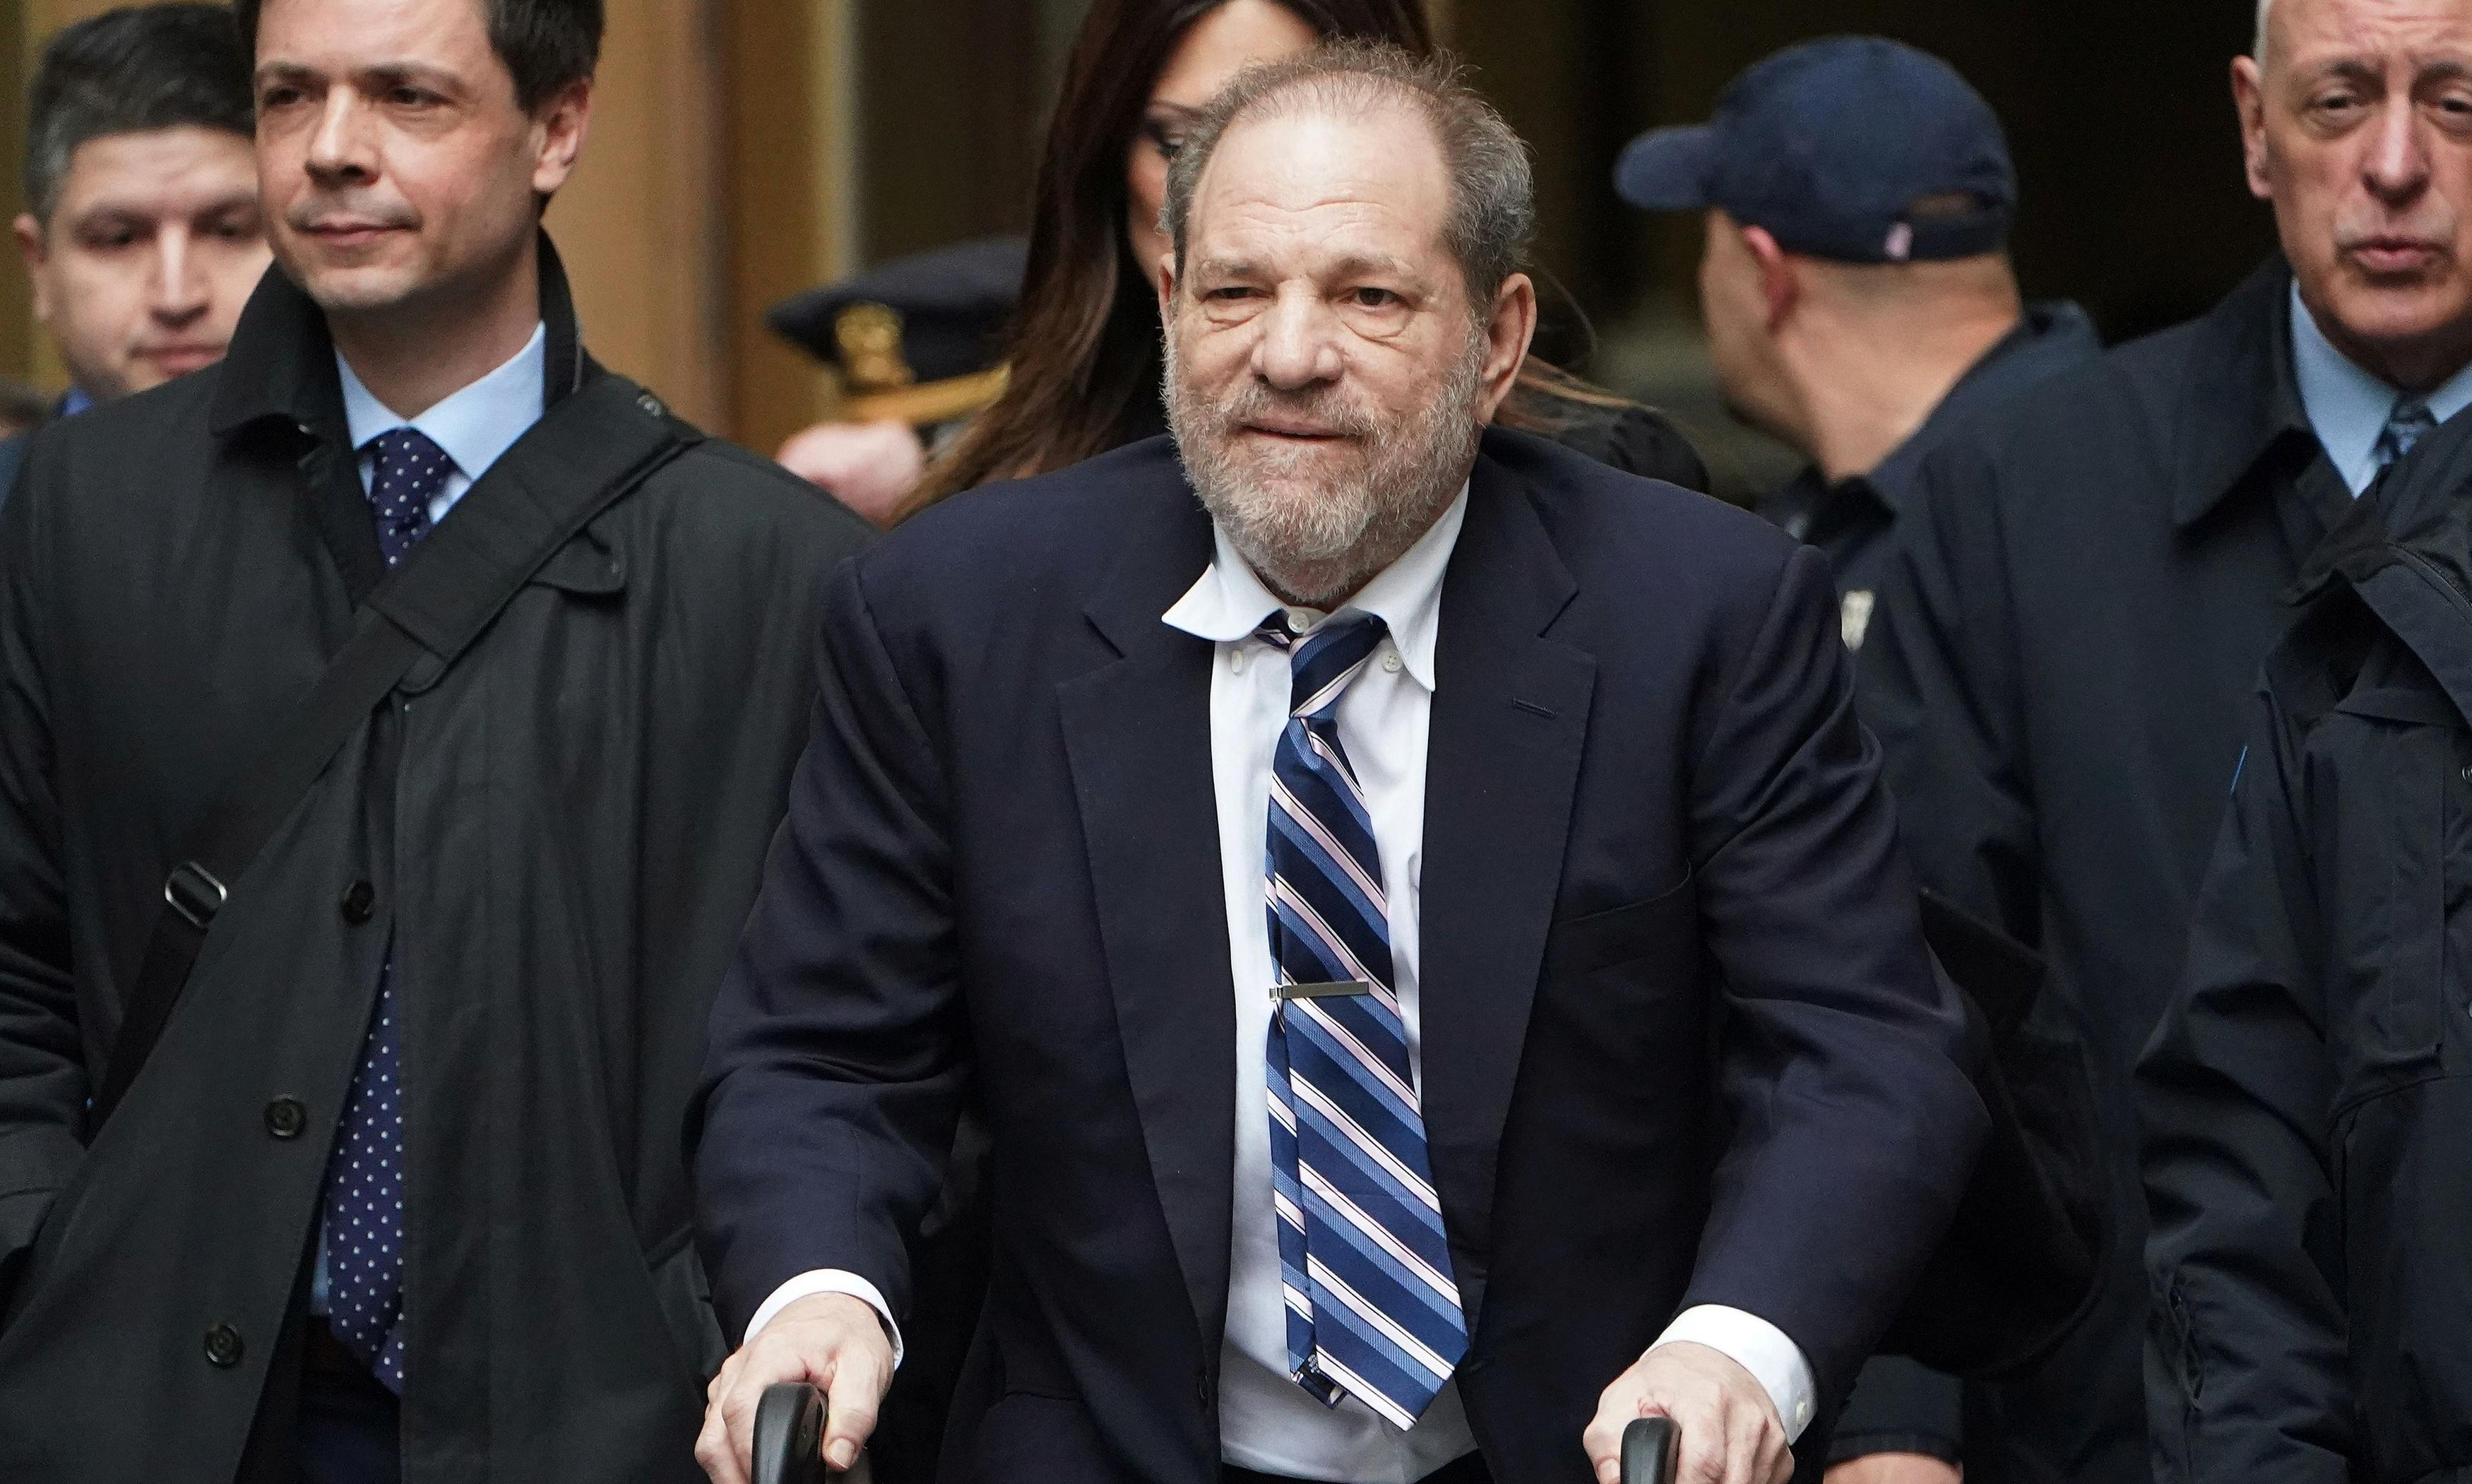 Harvey Weinstein trial shows the divides that exist in #MeToo movement